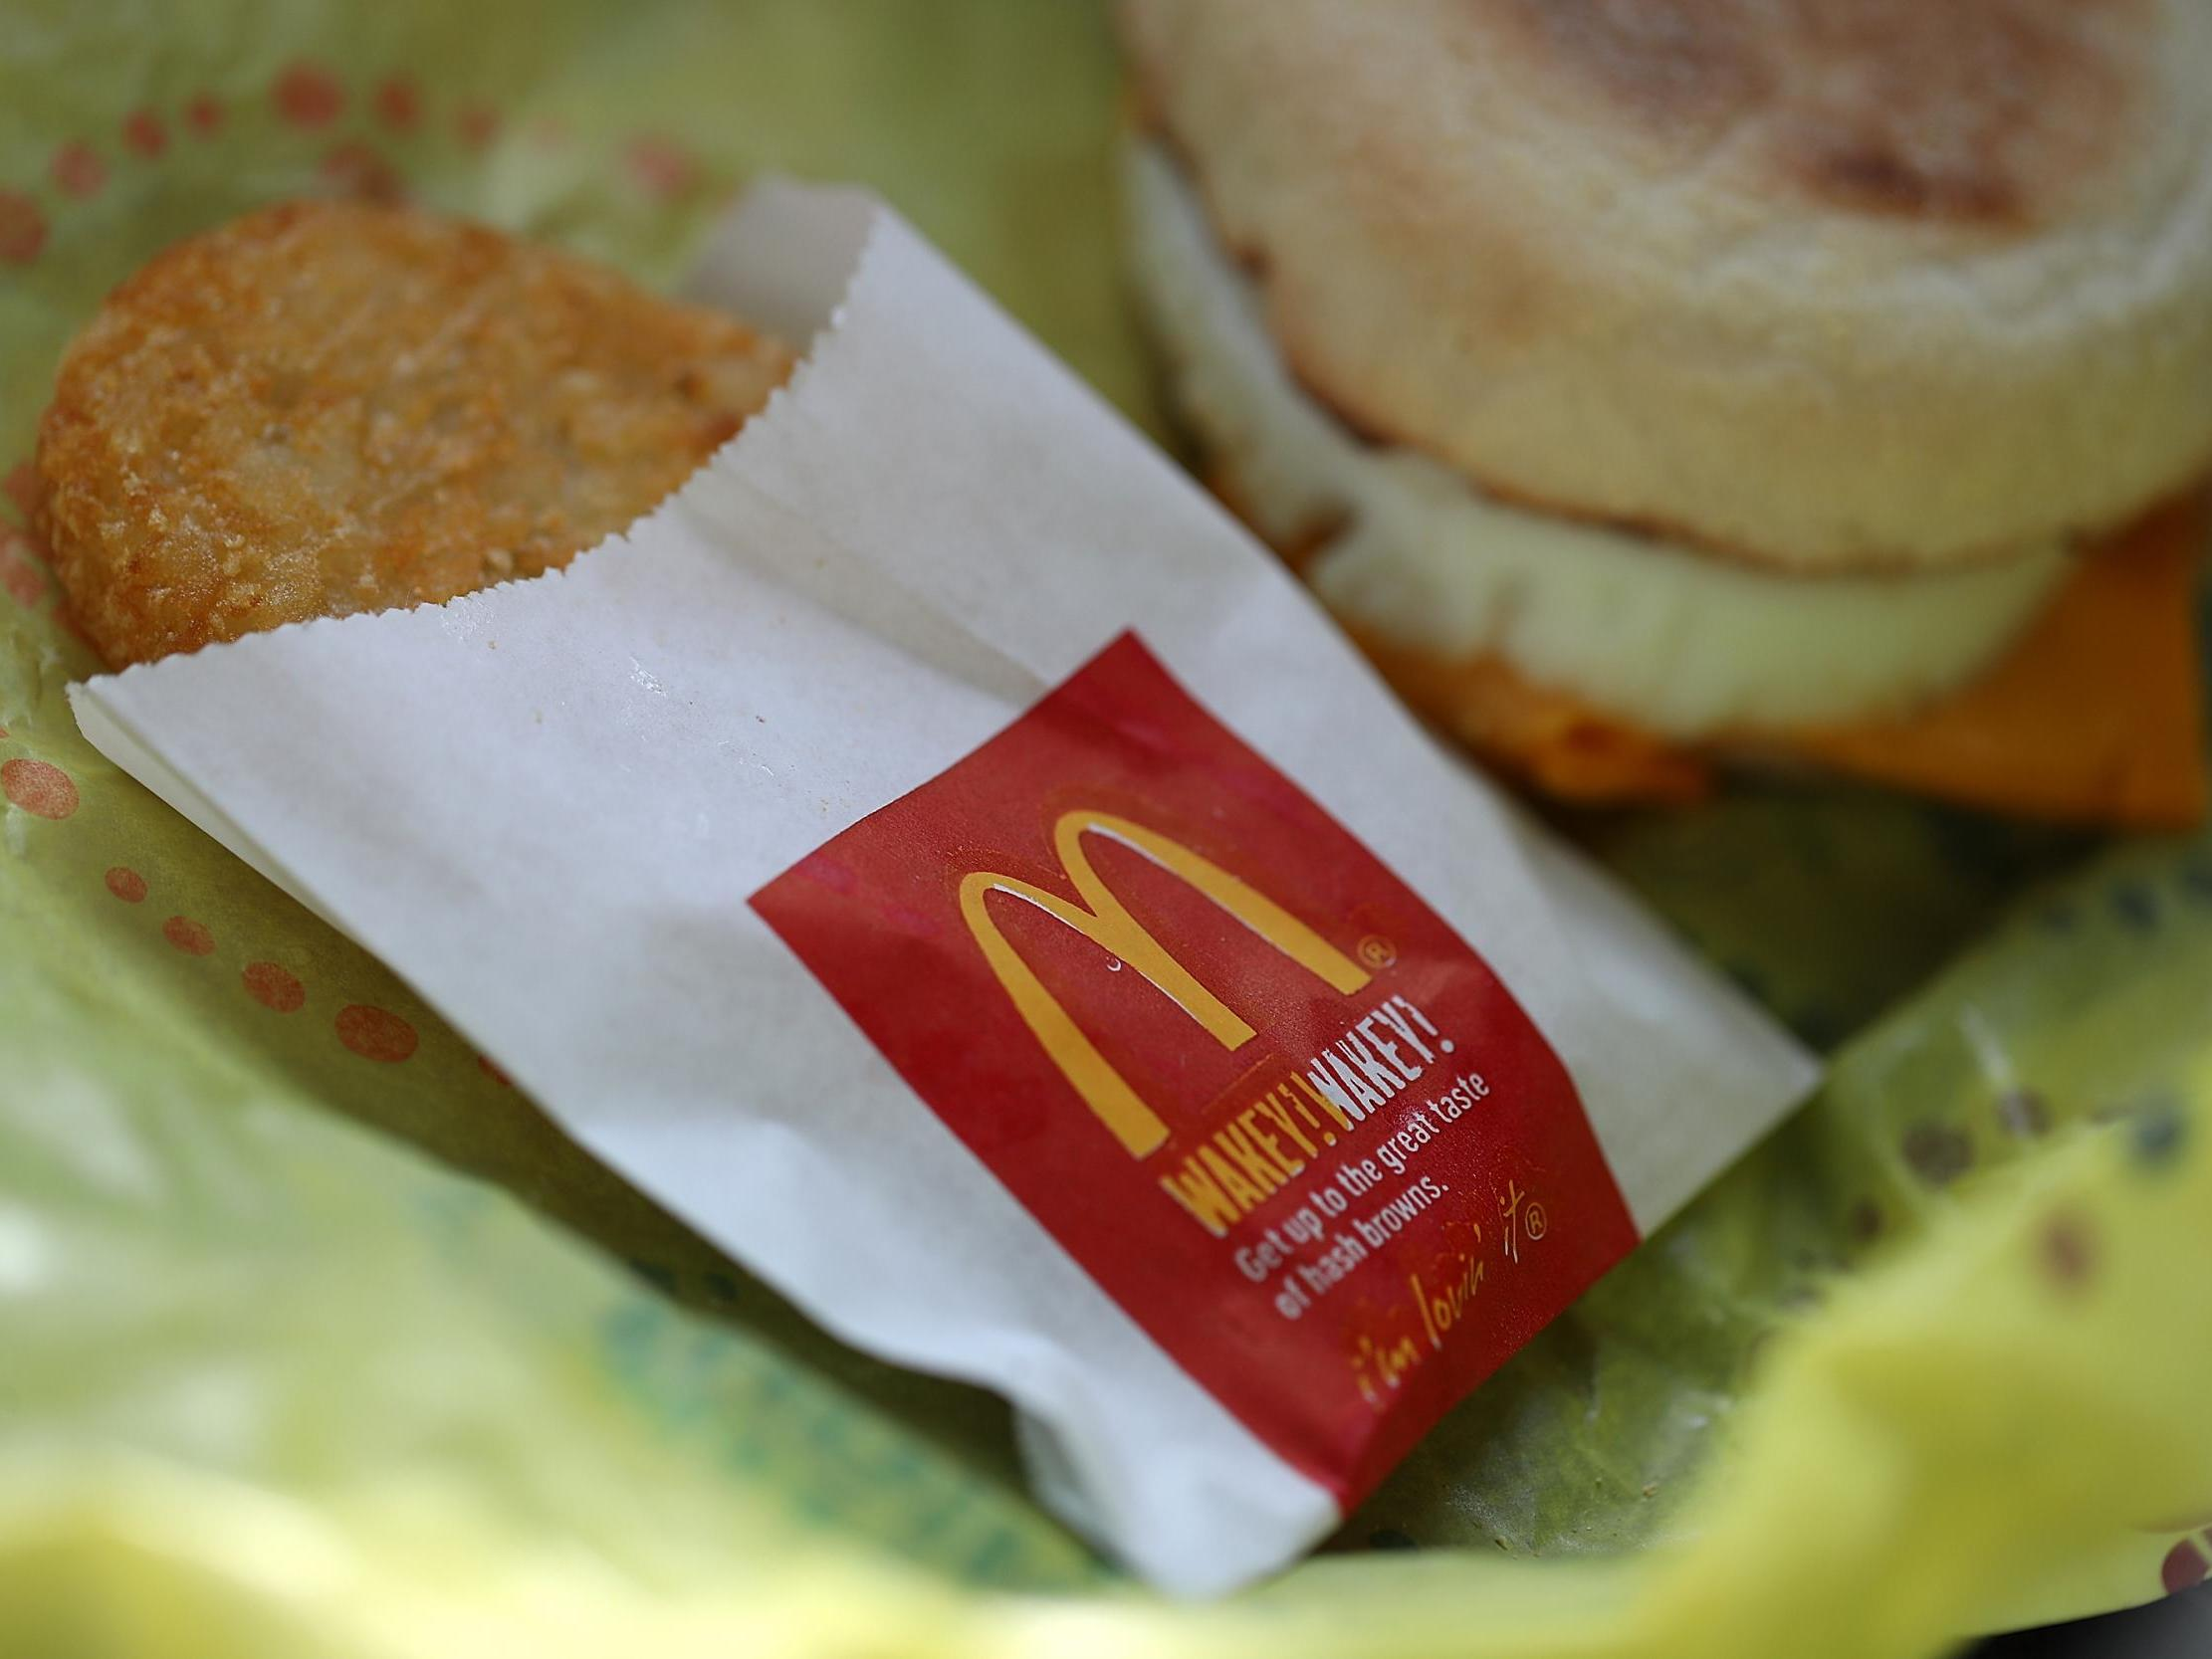 Driving fine overturned after 'mobile phone' turns out to be hash brown